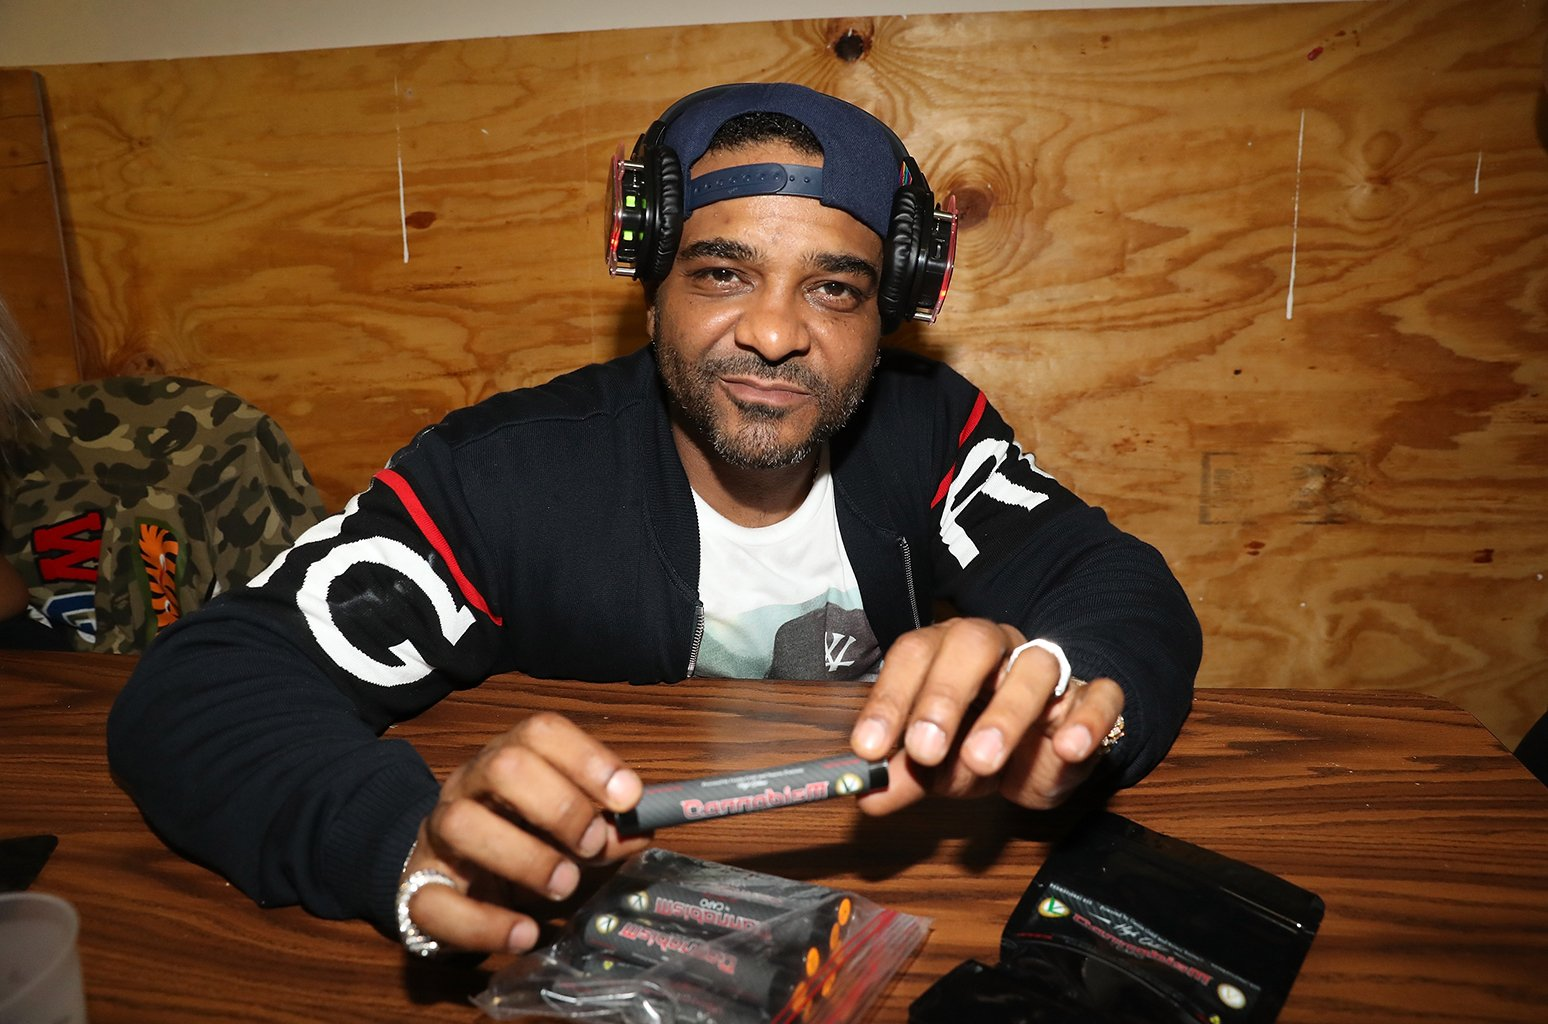 Jim Jones was arrested after a police chase https://t.co/iVHjGCYUal https://t.co/pFqoBF8PV9